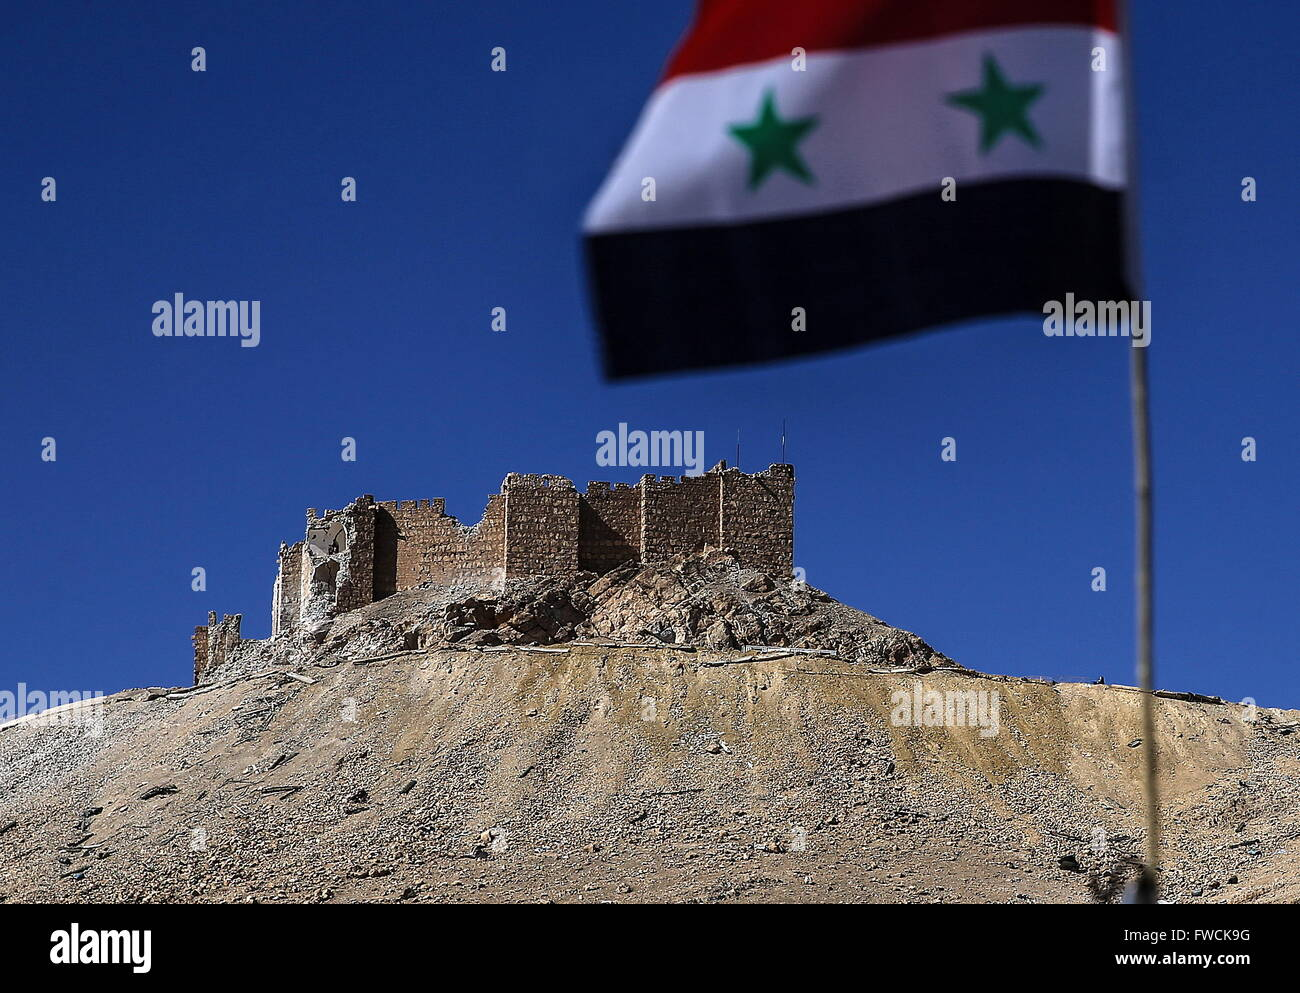 Palmyra, Syria. 2nd Apr, 2016. Fakhr al-Din al-Maani Citadel on the outskirts of Palmyra, with a Syrian national - Stock Image